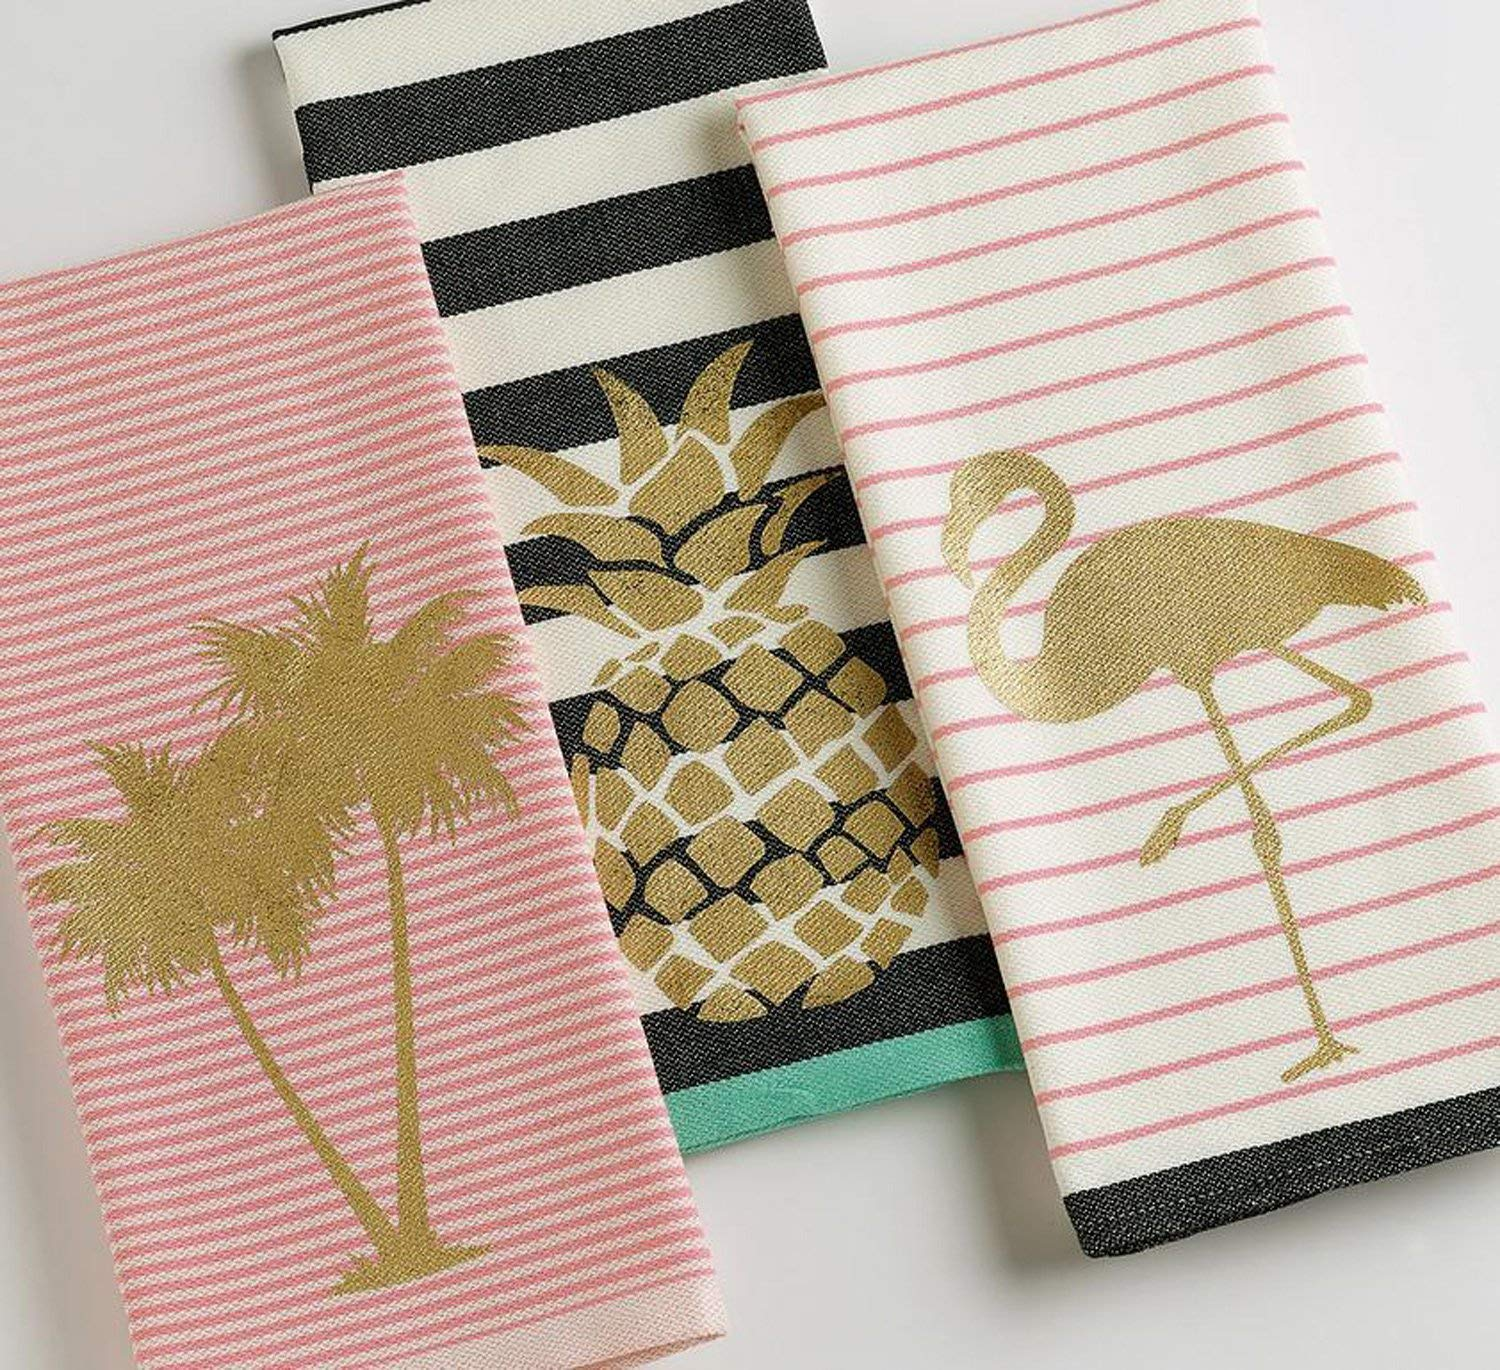 Golden Flamingo Dish Towel DII Pink Stripes Gold Cotton Design Imports